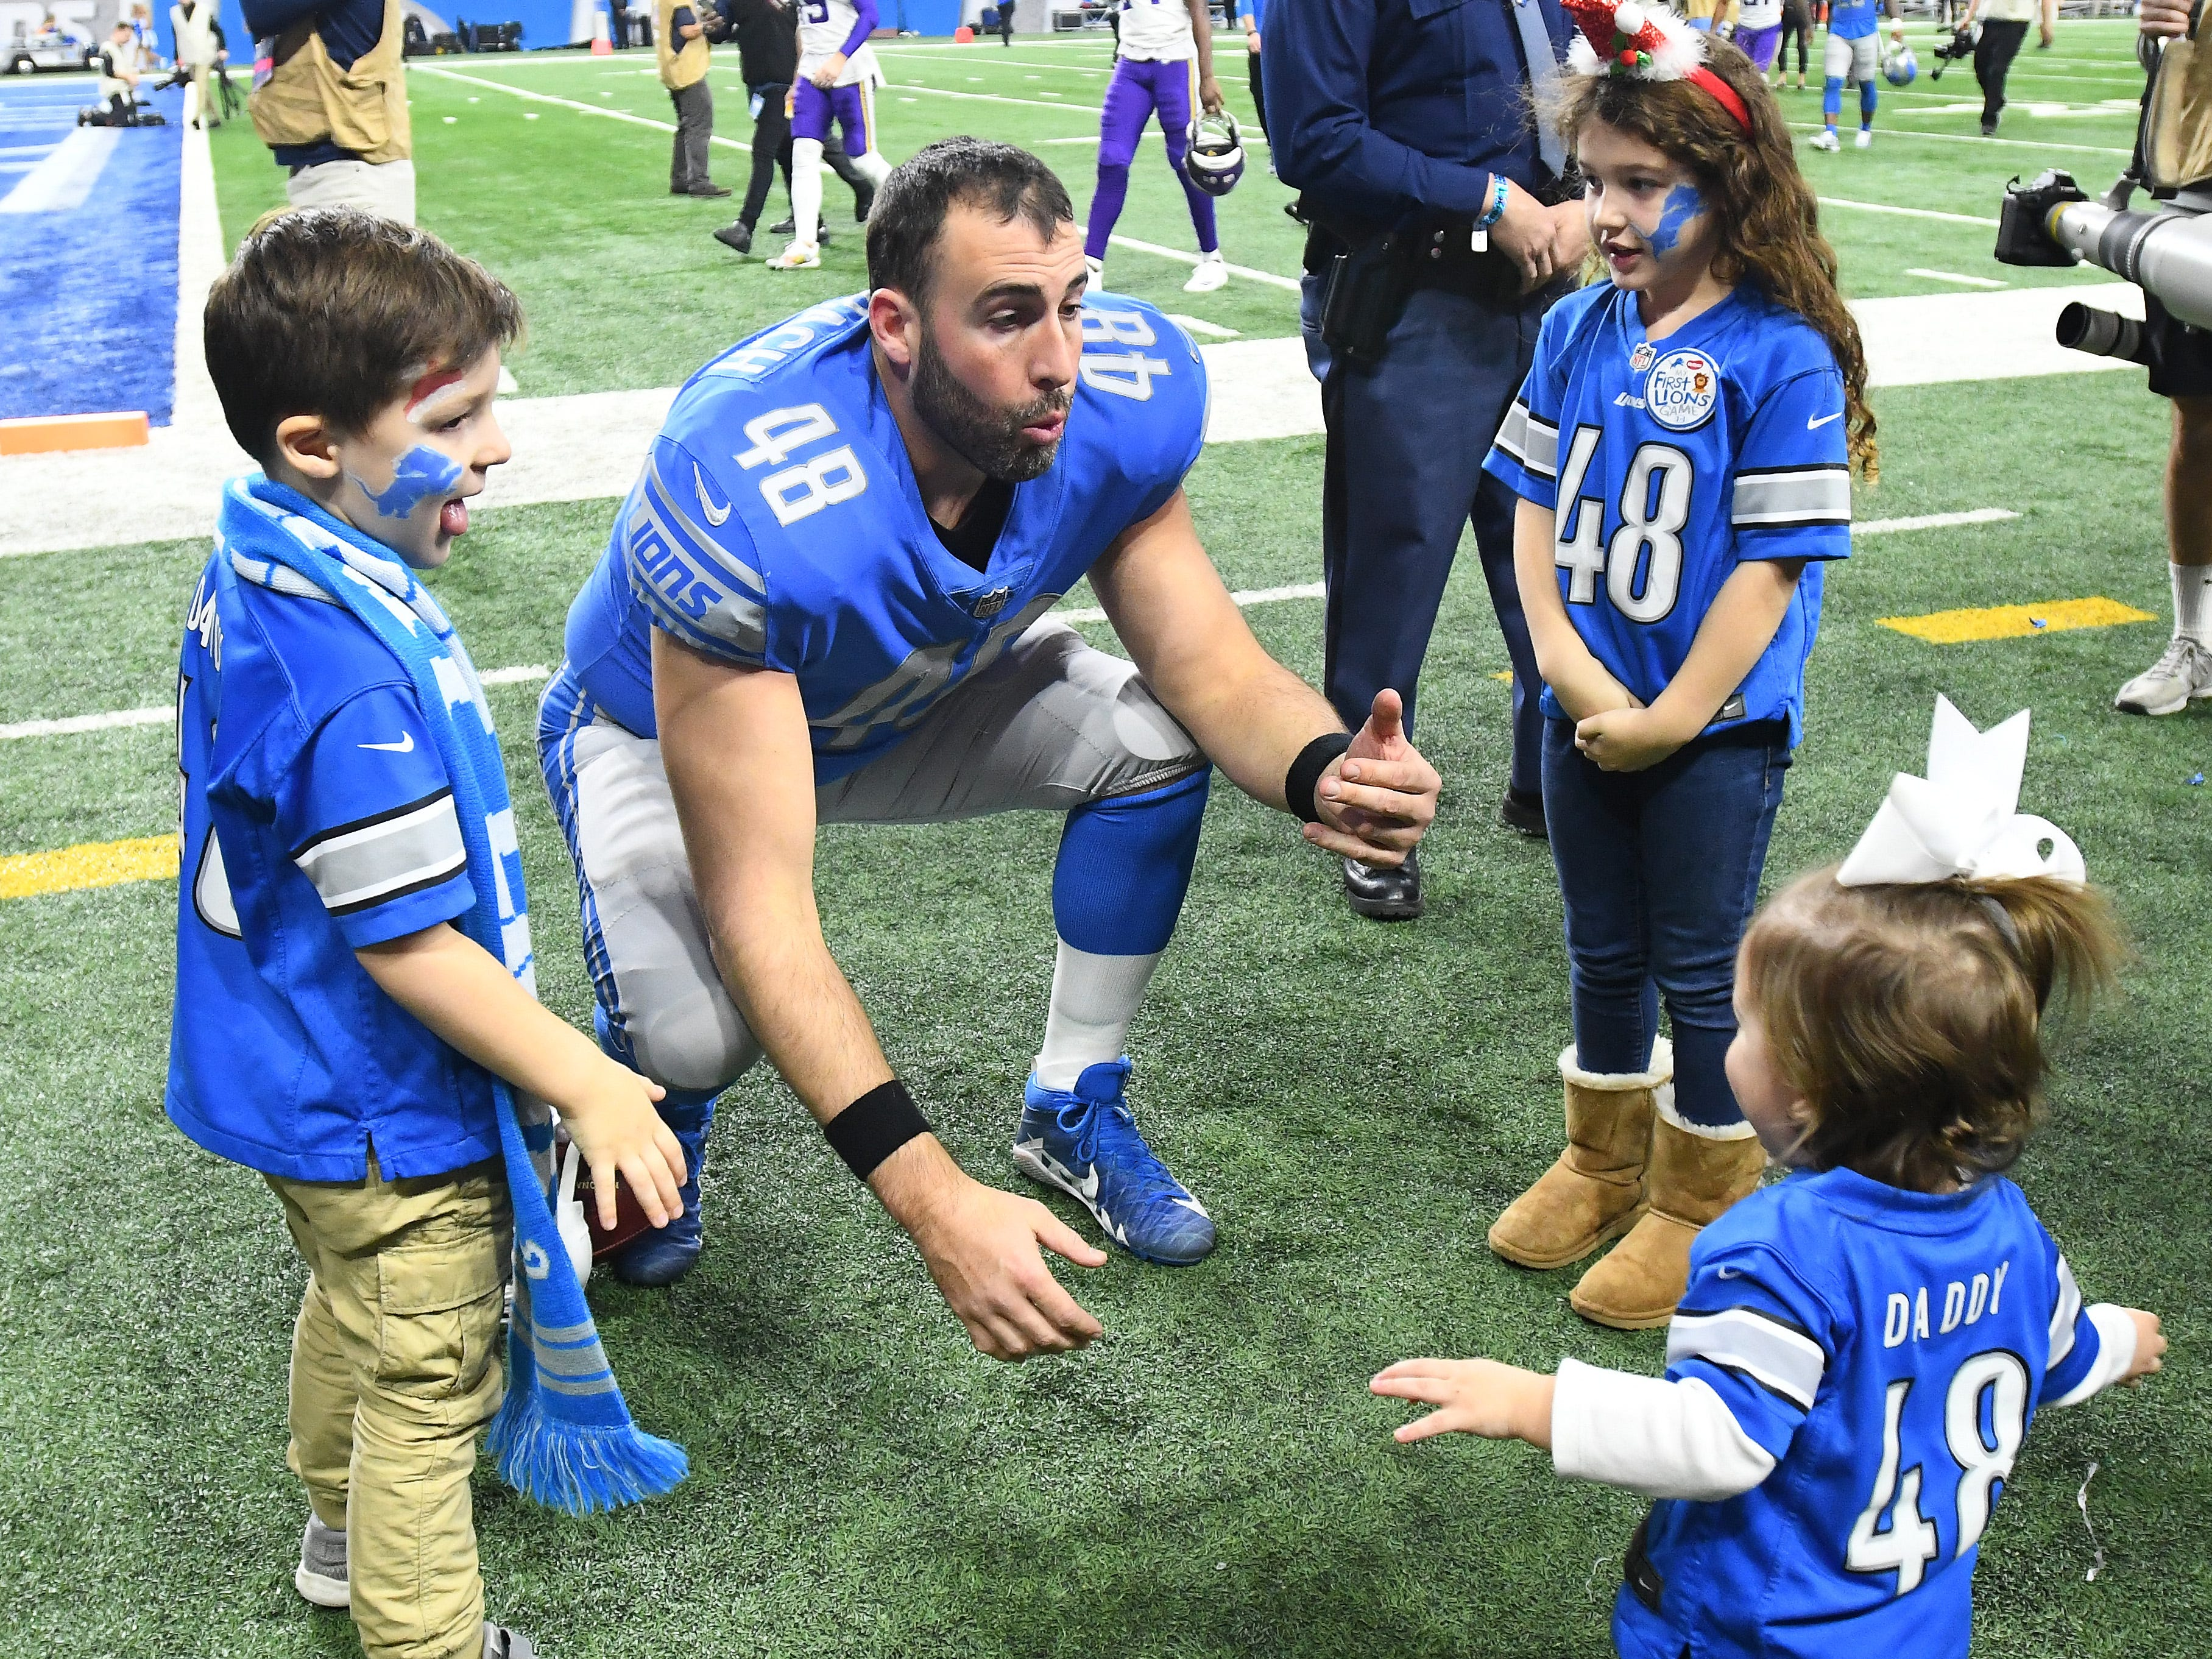 Lions 15 year veteran long snapper Don Muhlbach plays with his kids on the field after Detroit lost their last home game to the Vikings.